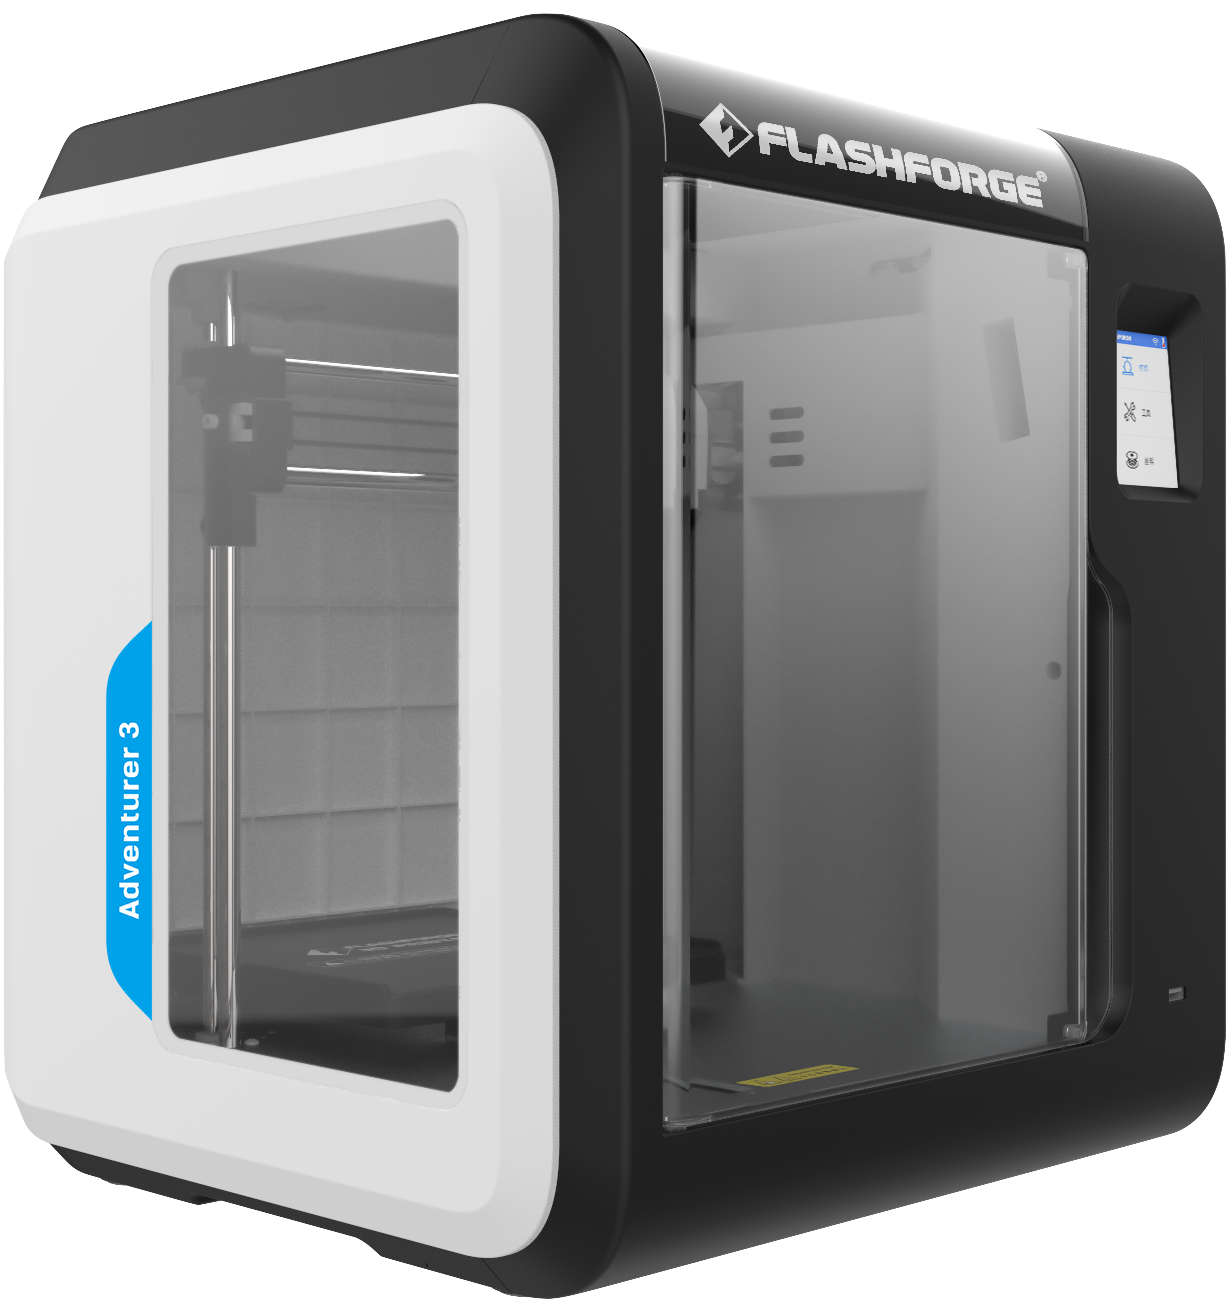 Top-10 Cheap 3D Printers For Beginners 2019